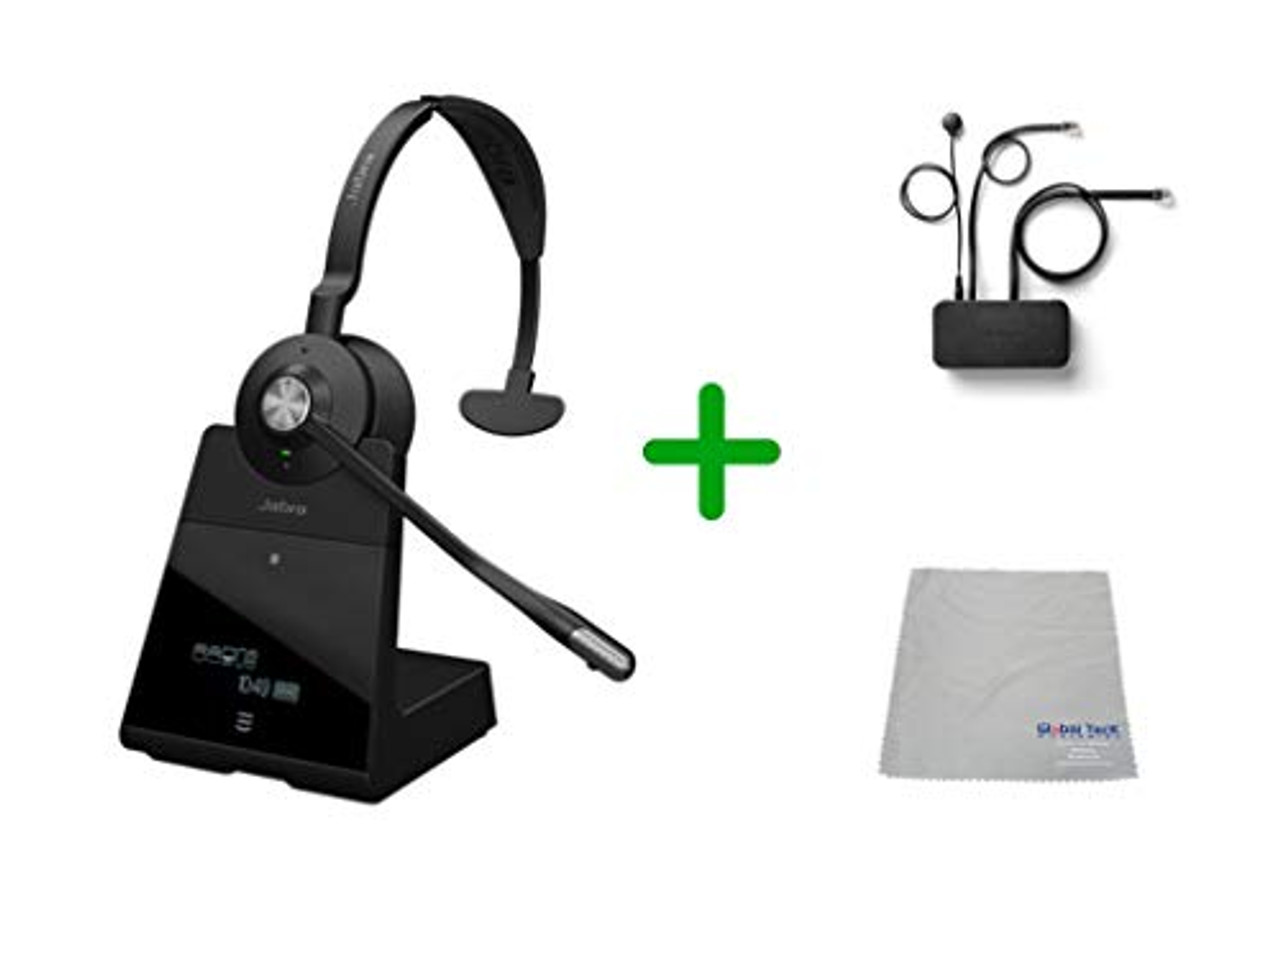 Avaya Compatible Jabra Engage 65 Wireless Mono Headset Bundle With Ehs Adapter 9553 553 125 Ava35 Avaya Deskphones And Pc Mac Compatible Models J169 J179 1608 1616 1608 1616 9620 9630 9640 9650 Busy Light Global Teck